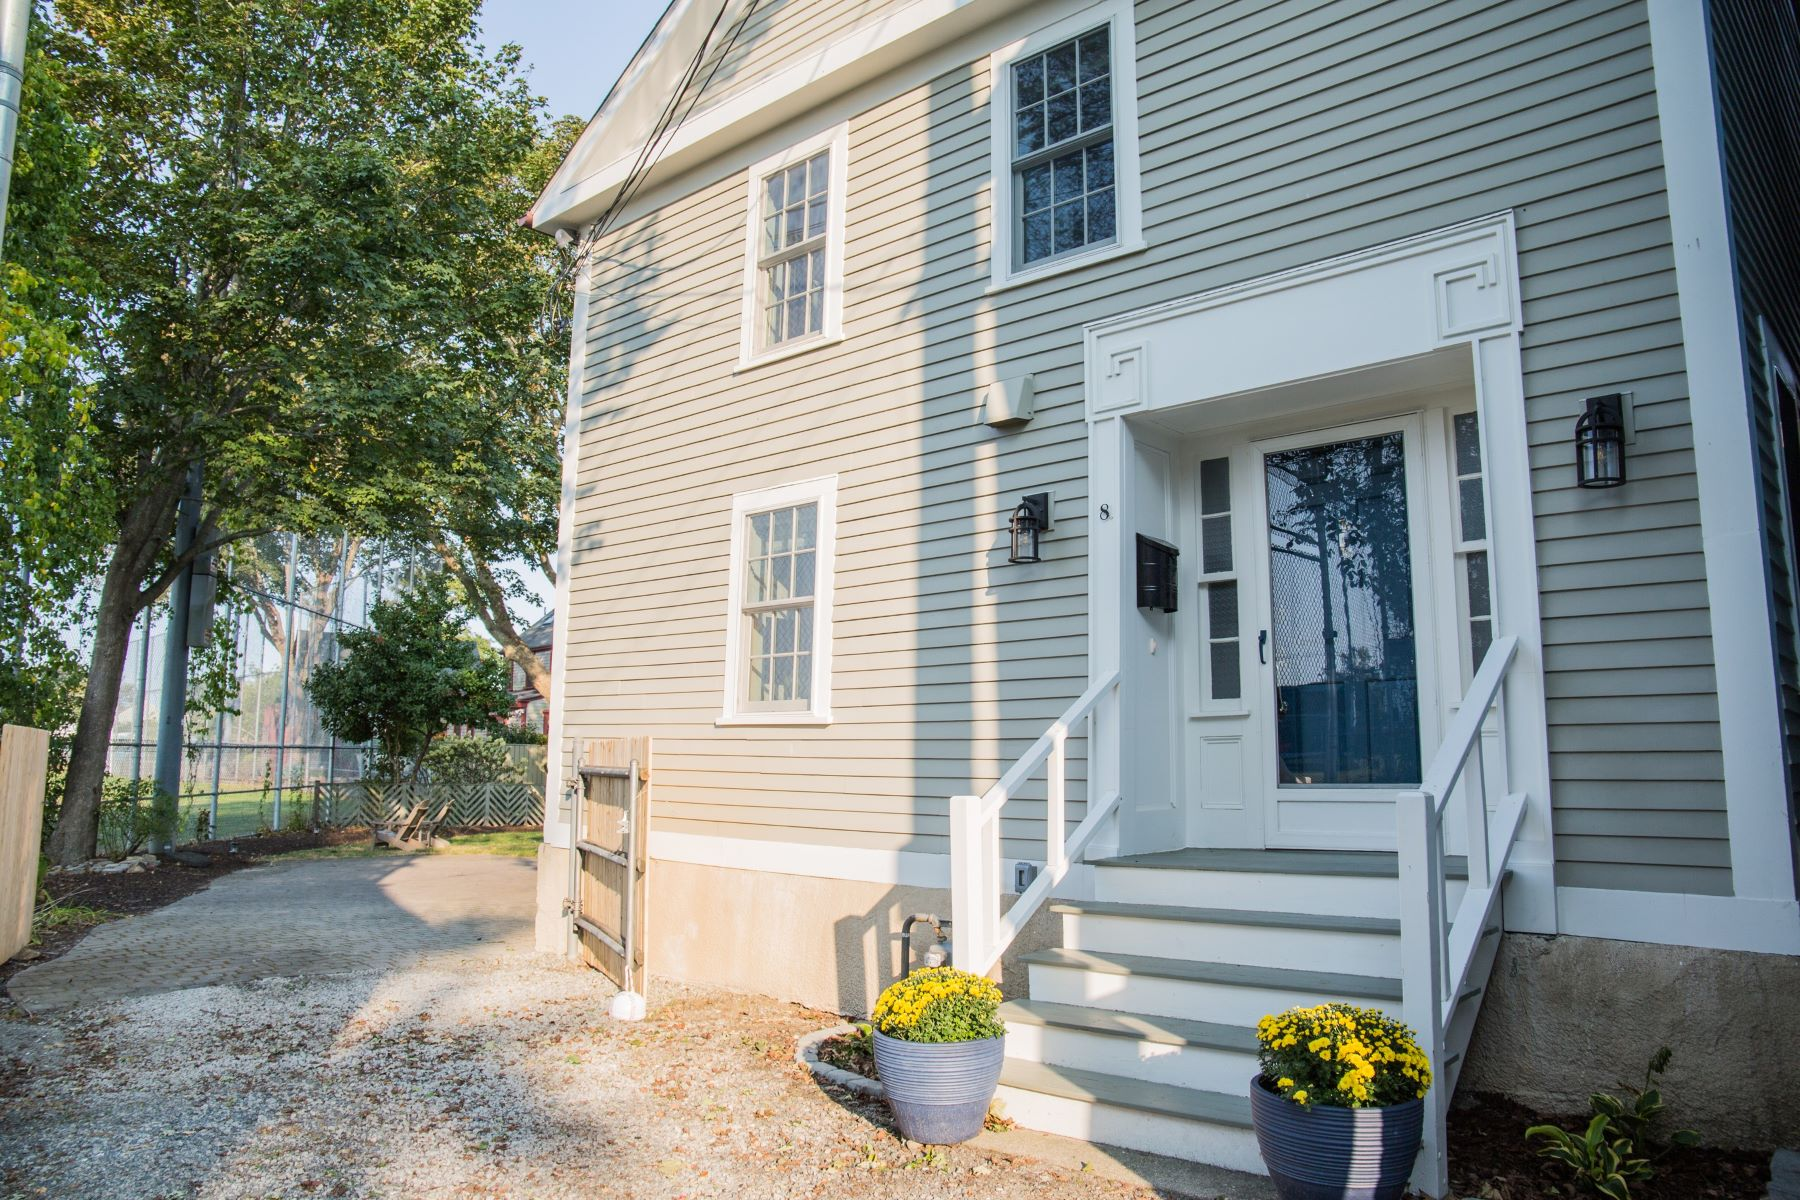 Single Family Homes for Sale at Newport Gem 8 Cozzens Court Newport, Rhode Island 0240 United States